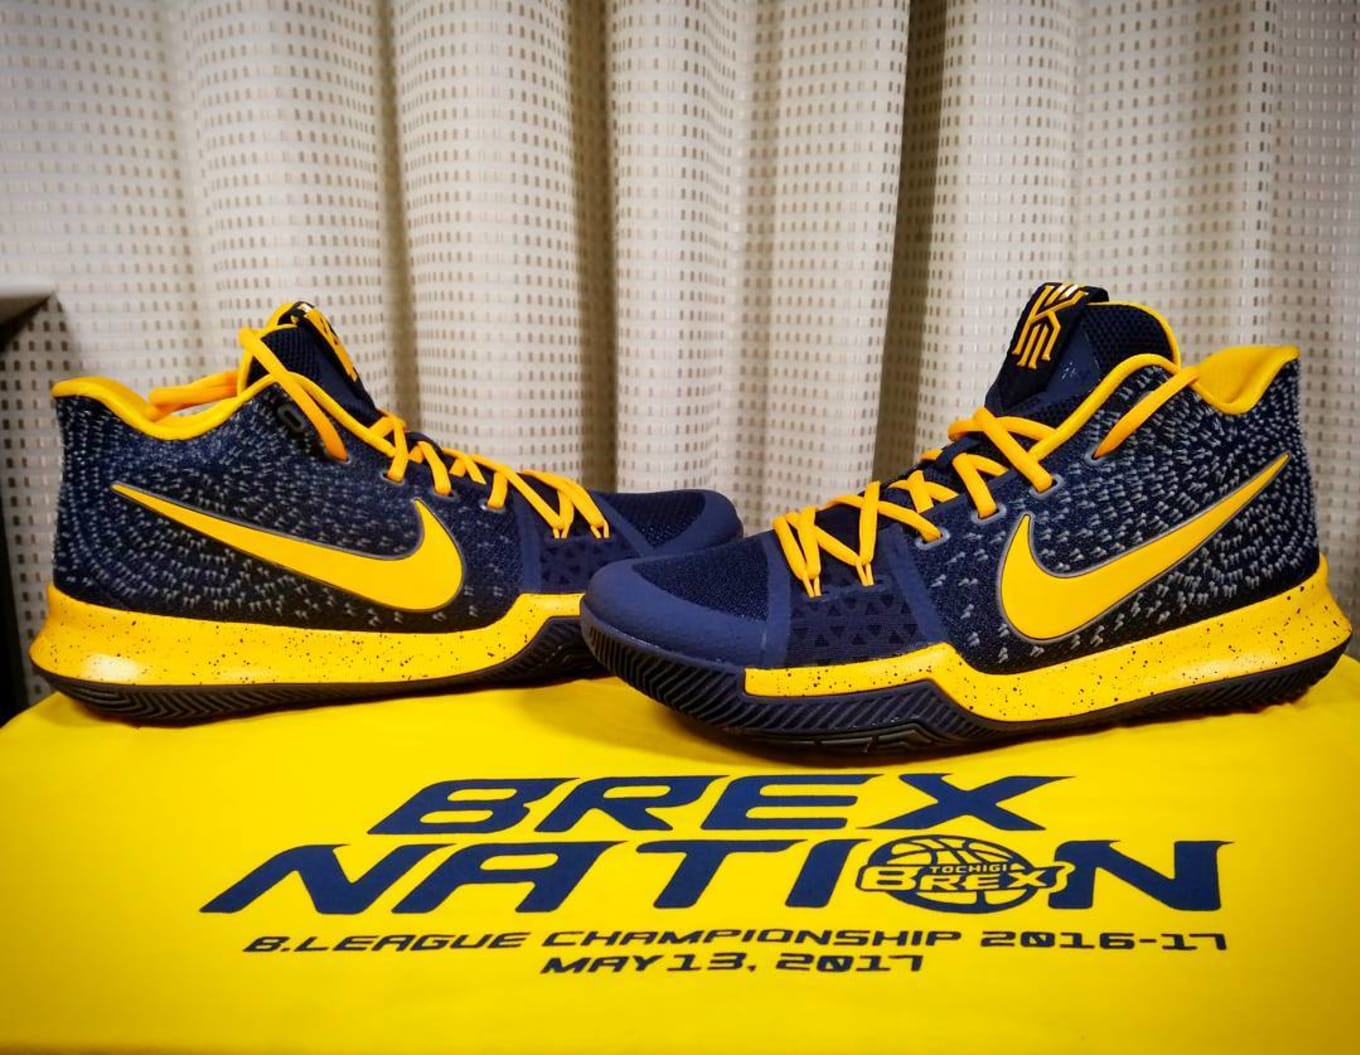 d8ba4917110 The Best Nike ID Kyrie 3 Designs | Sole Collector